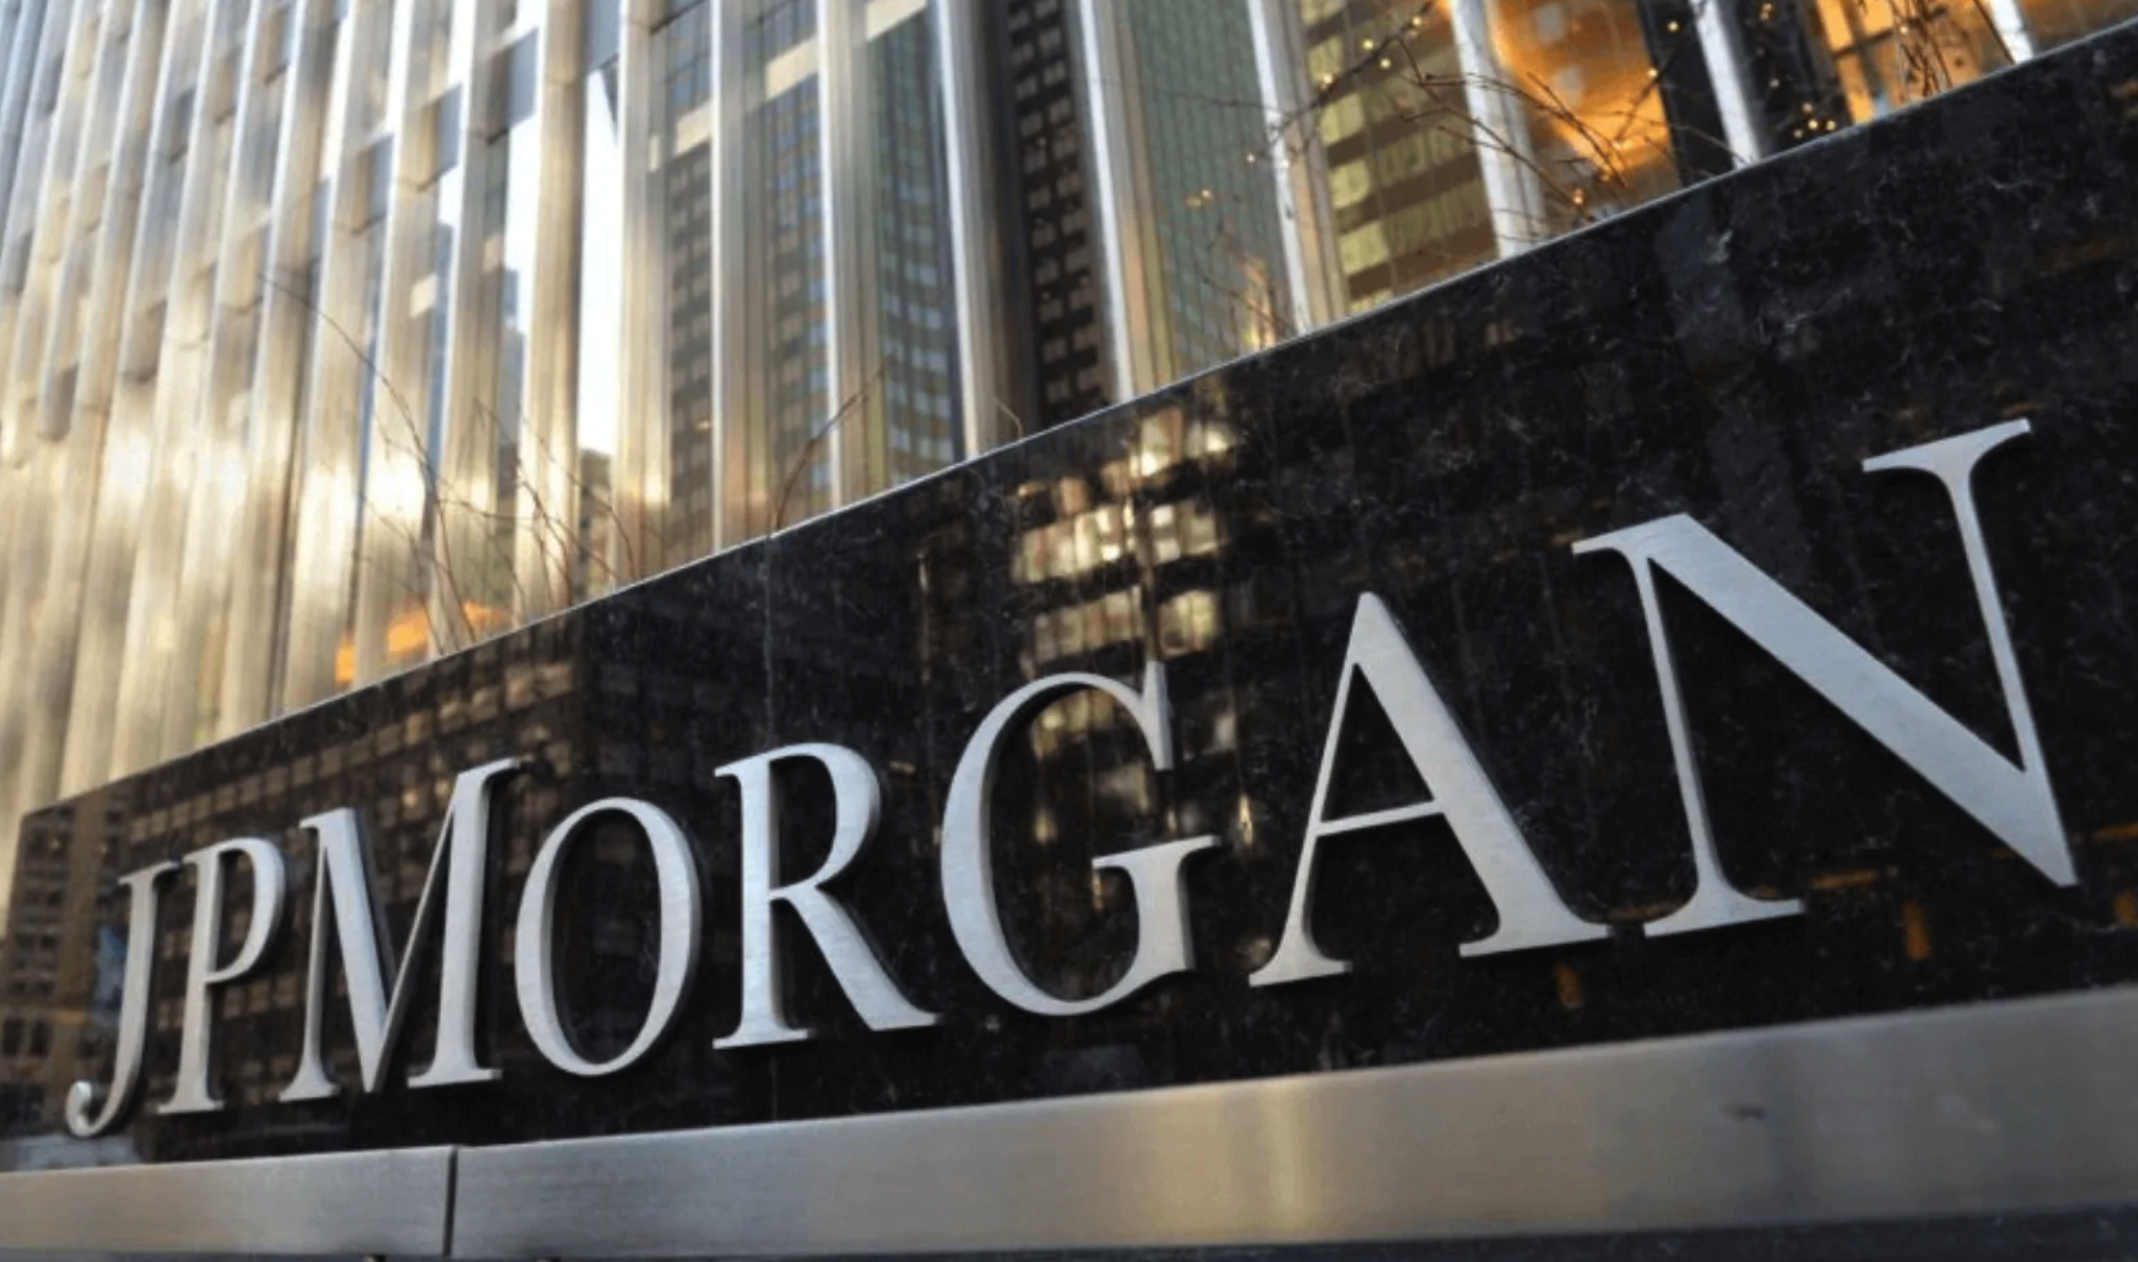 jpmorgan-report-institutional-investors-have-been-turning-more-to-bitcoin-rather-than-gold-lately1